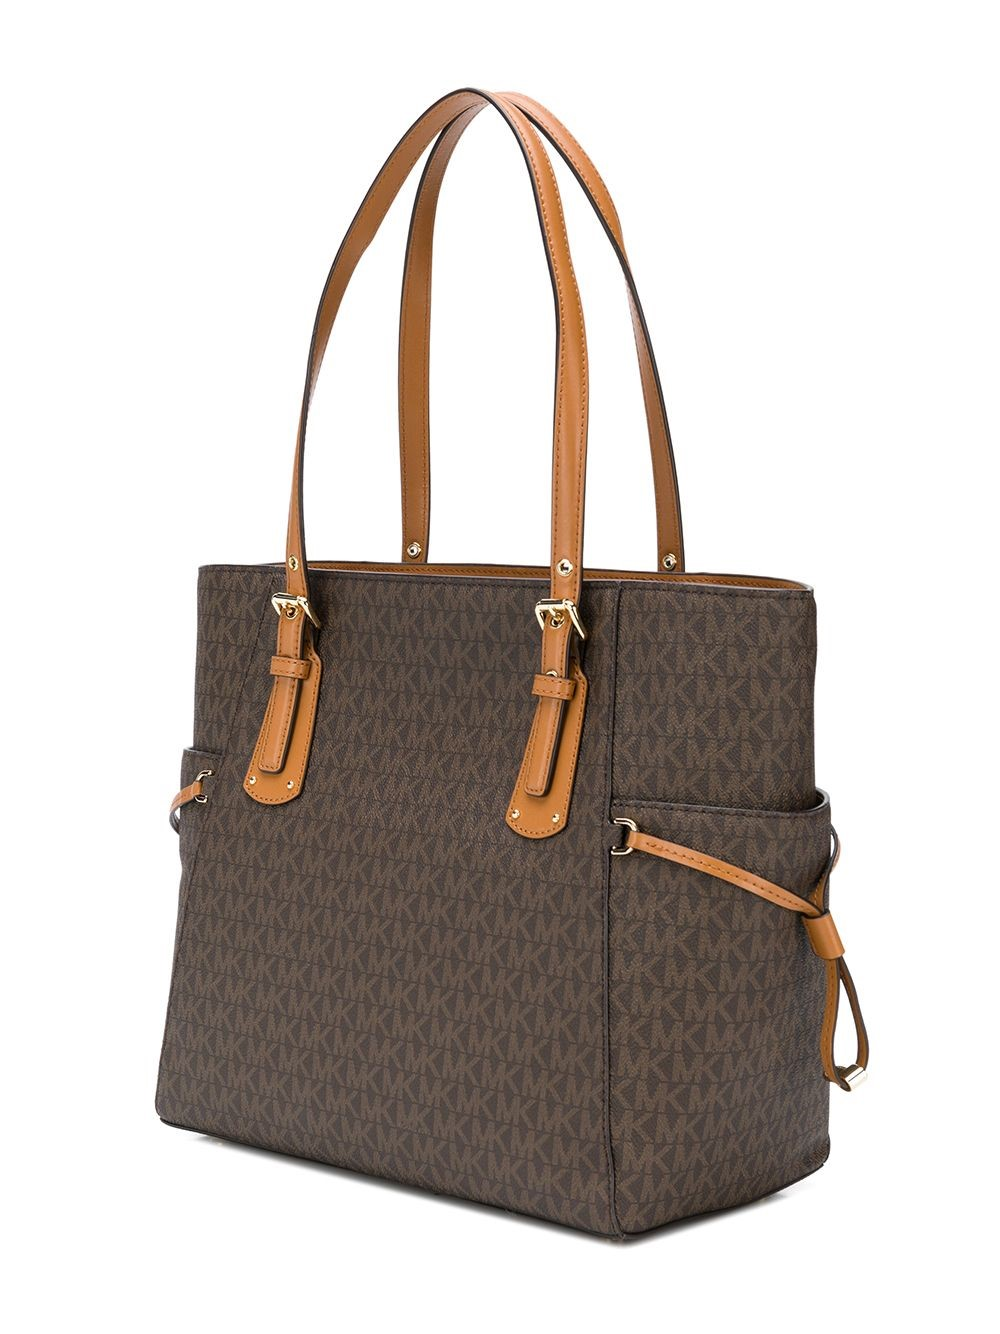 e813f5a6467c michael kors mk LOGO TOTE BAG available on montiboutique.com - 26070